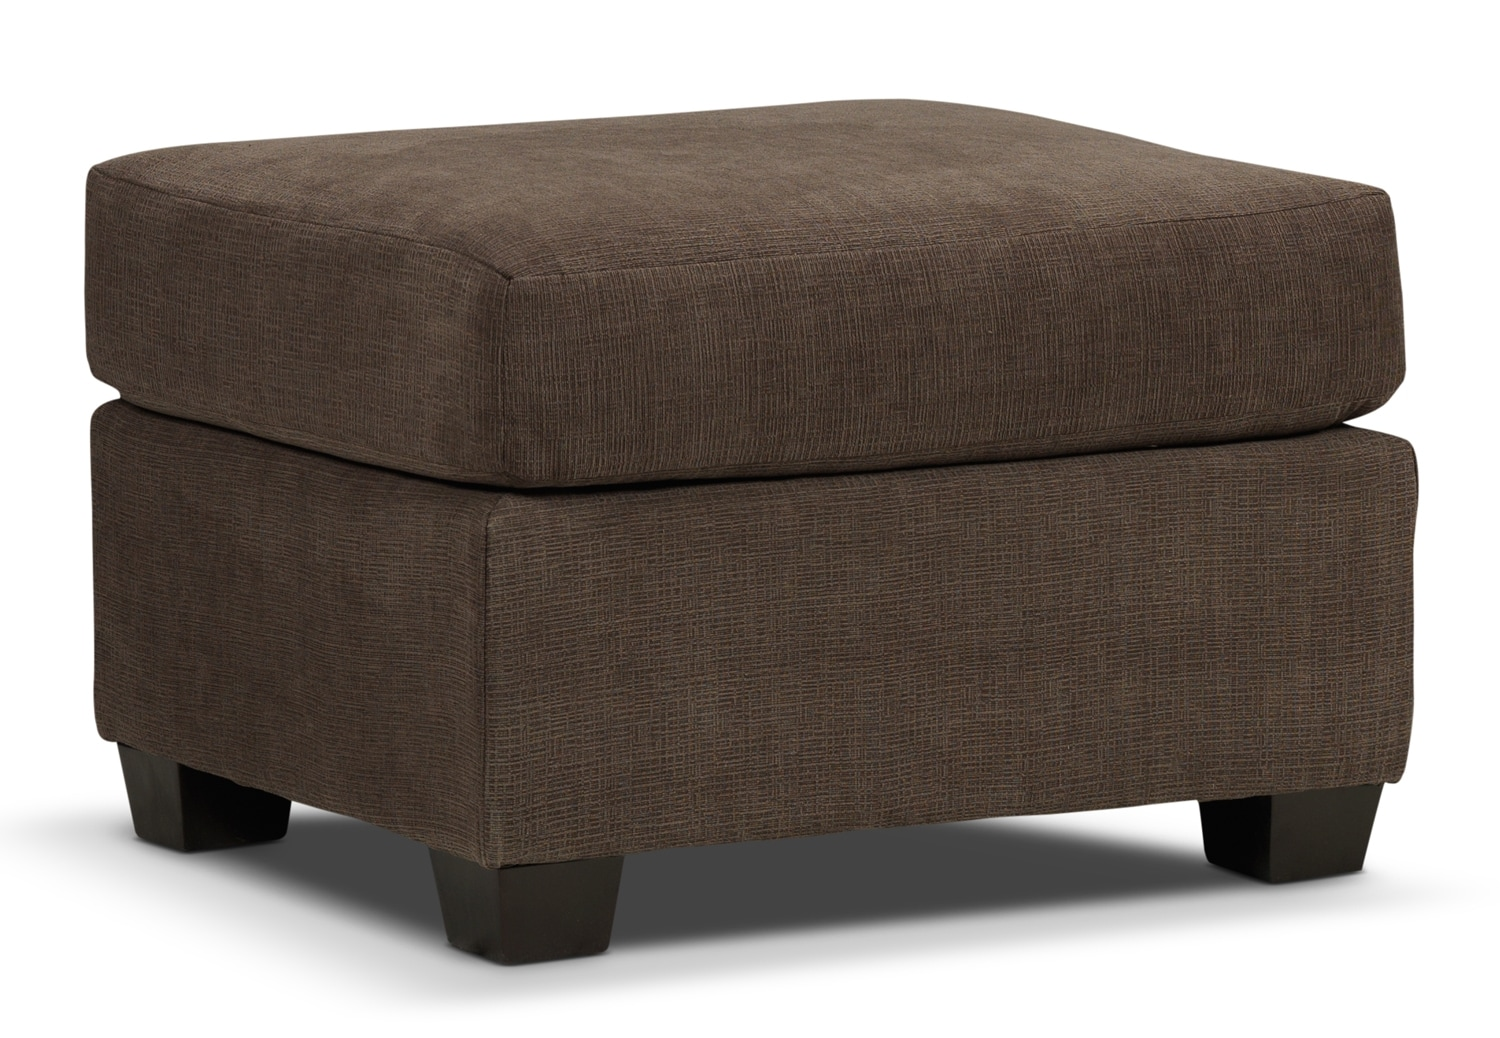 Living Room Furniture - Fava Ottoman - Light Brown